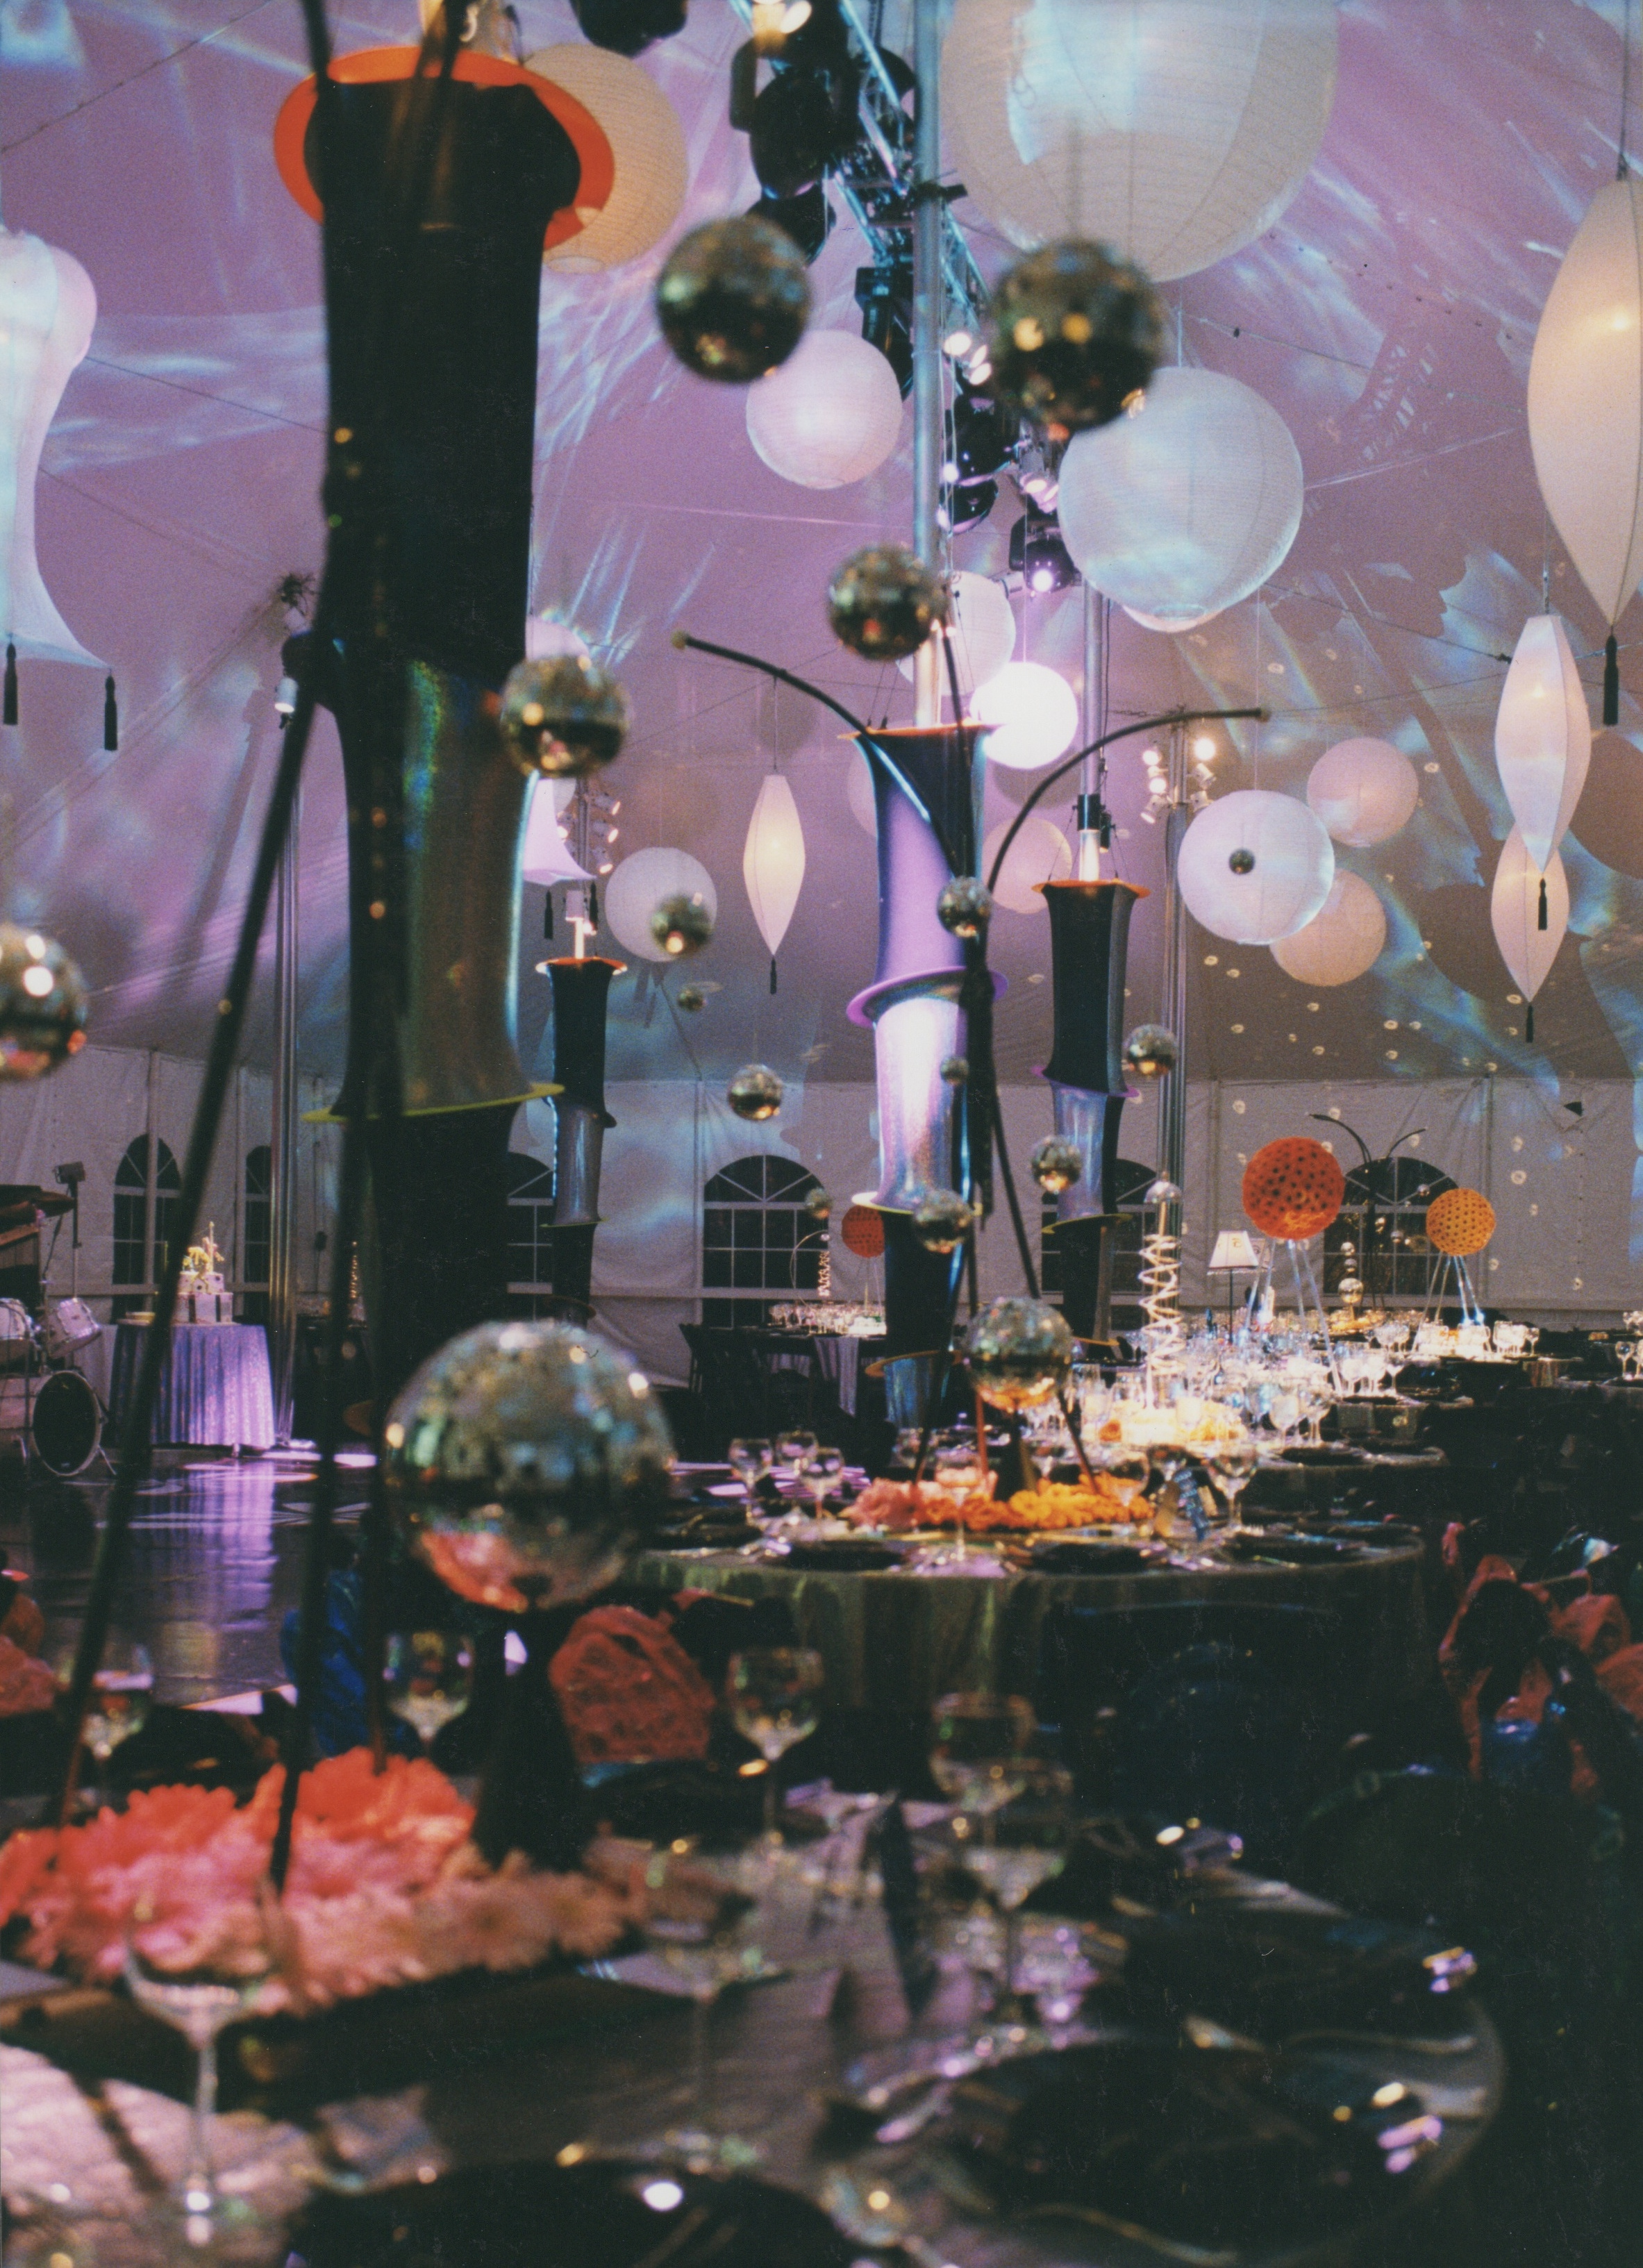 Eggsotic Events Early Years Decor 47.jpg